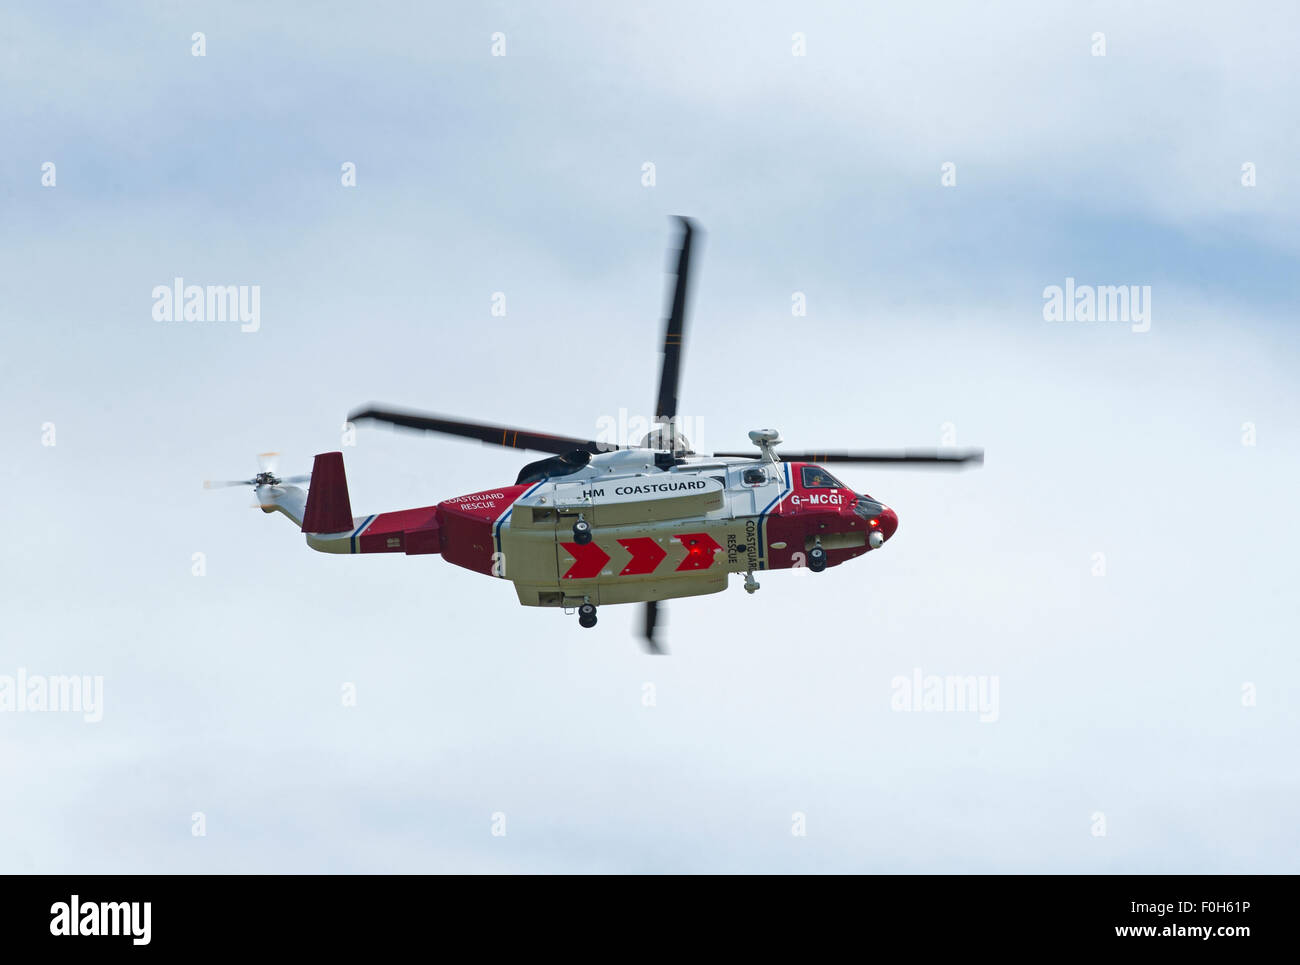 Sikorsky S-92A Coastguard SAR Helicopter (G-MCGI) based at Inverness. SCO 10,028. - Stock Image